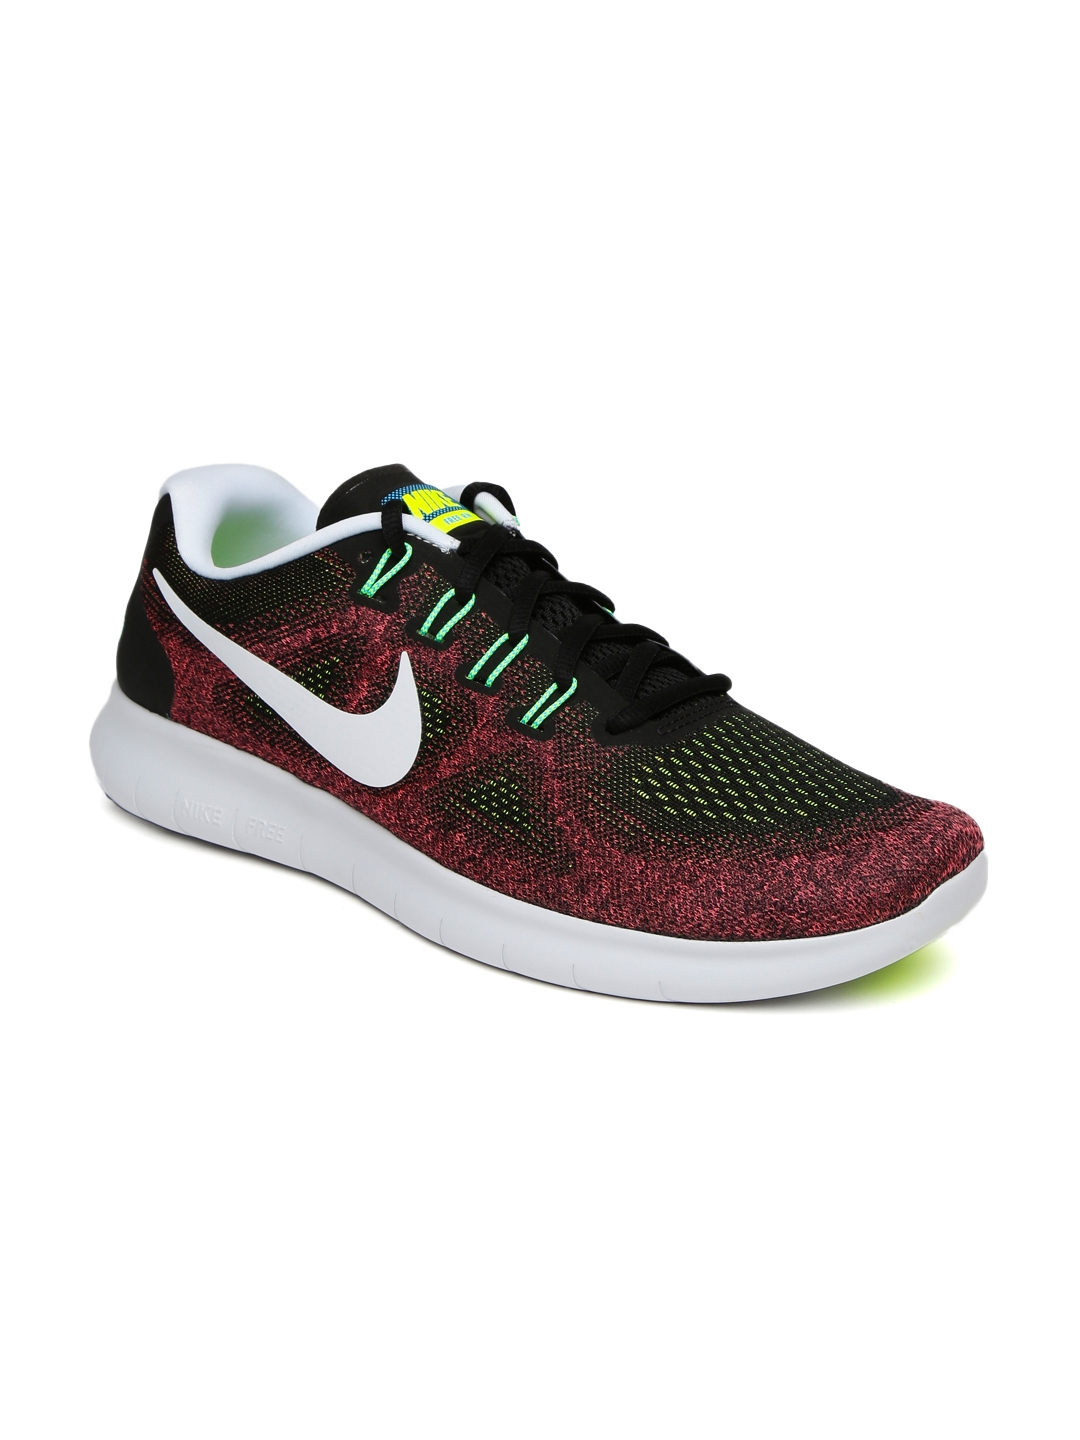 71c6546cd641 Buy Nike Men Burgundy   Black Free RN 2017 Running Shoes - Sports ...